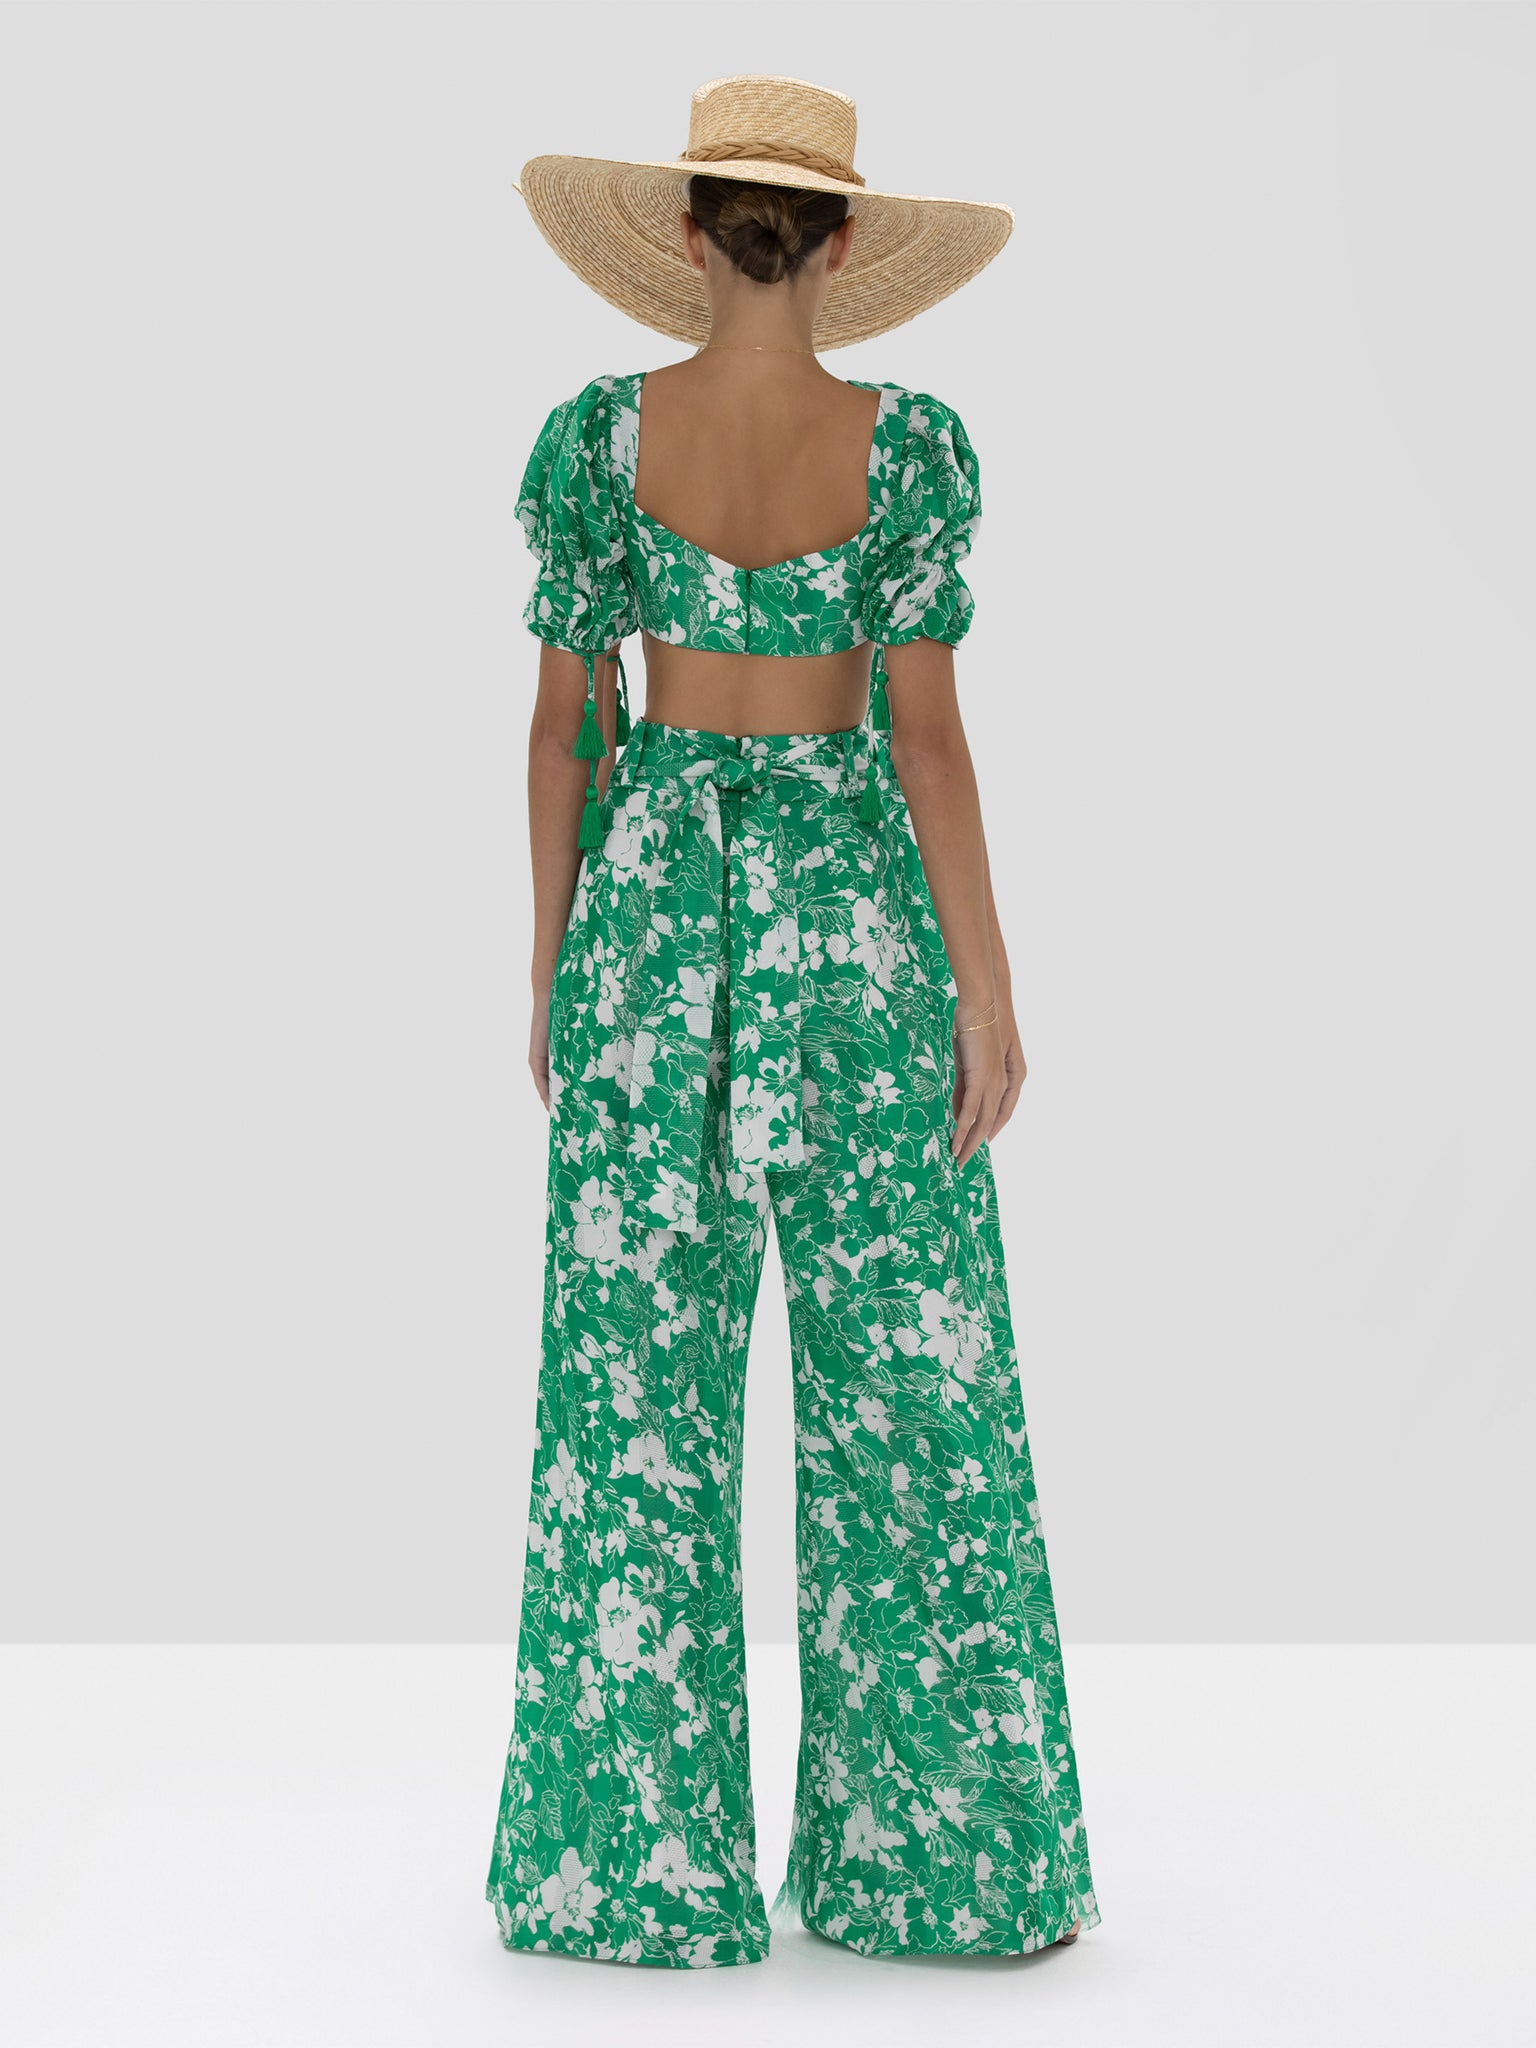 """Hover Image"" The Shel Pants in Emerald Floral from the Spring Summer 2020 Ready To Wear Collection. - Rear View"